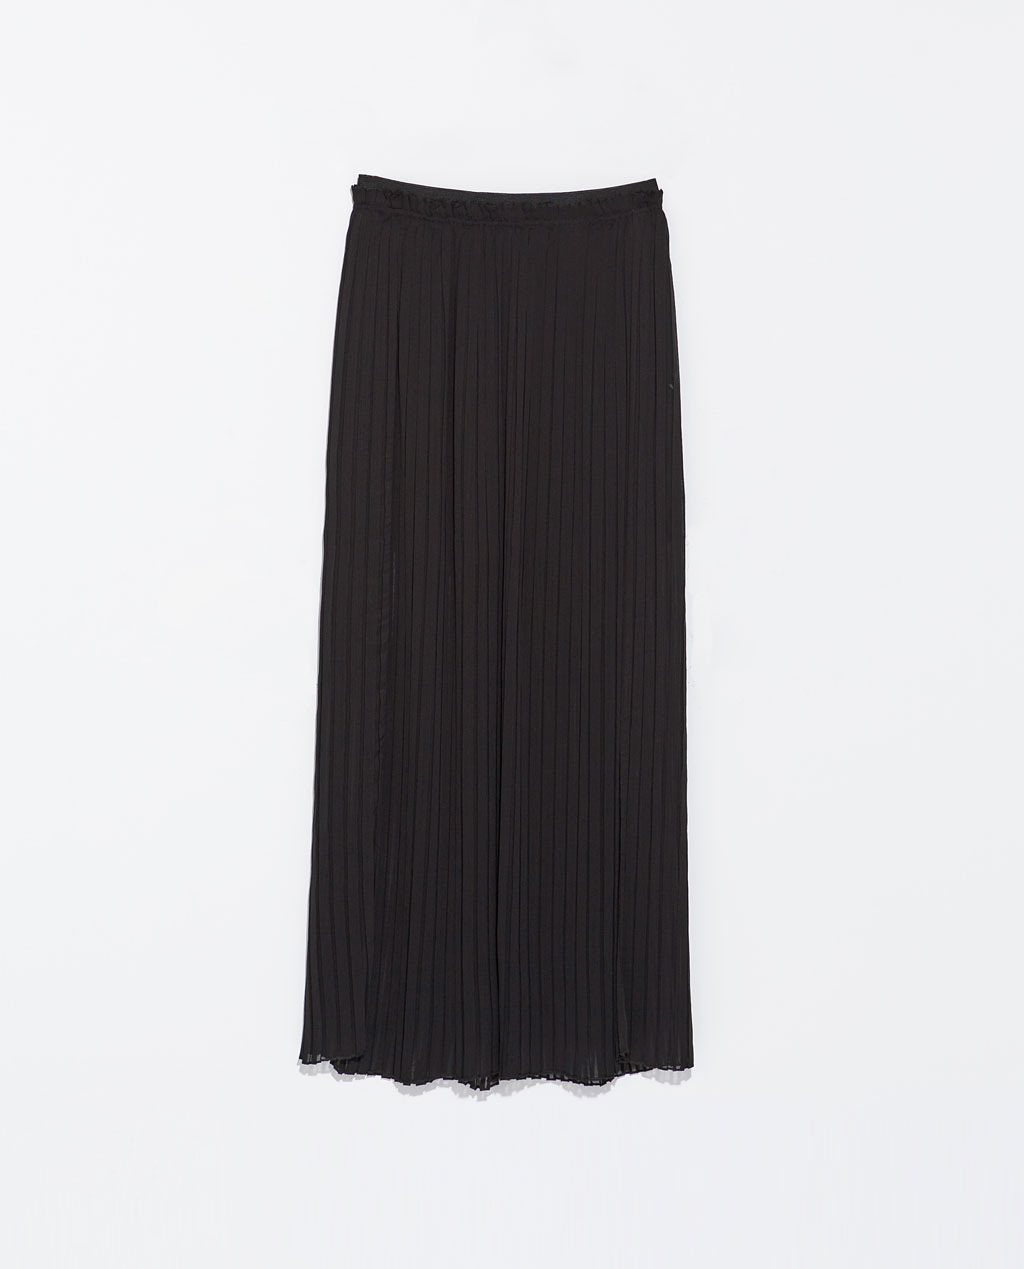 Long Fine Pleat Skirt - pattern: plain; waist: mid/regular rise; predominant colour: black; occasions: casual, evening, holiday; length: floor length; style: maxi skirt; fibres: polyester/polyamide - 100%; hip detail: structured pleats at hip; texture group: sheer fabrics/chiffon/organza etc.; fit: straight cut; pattern type: fabric; trends: powerful pleats, sheer; season: s/s 2014